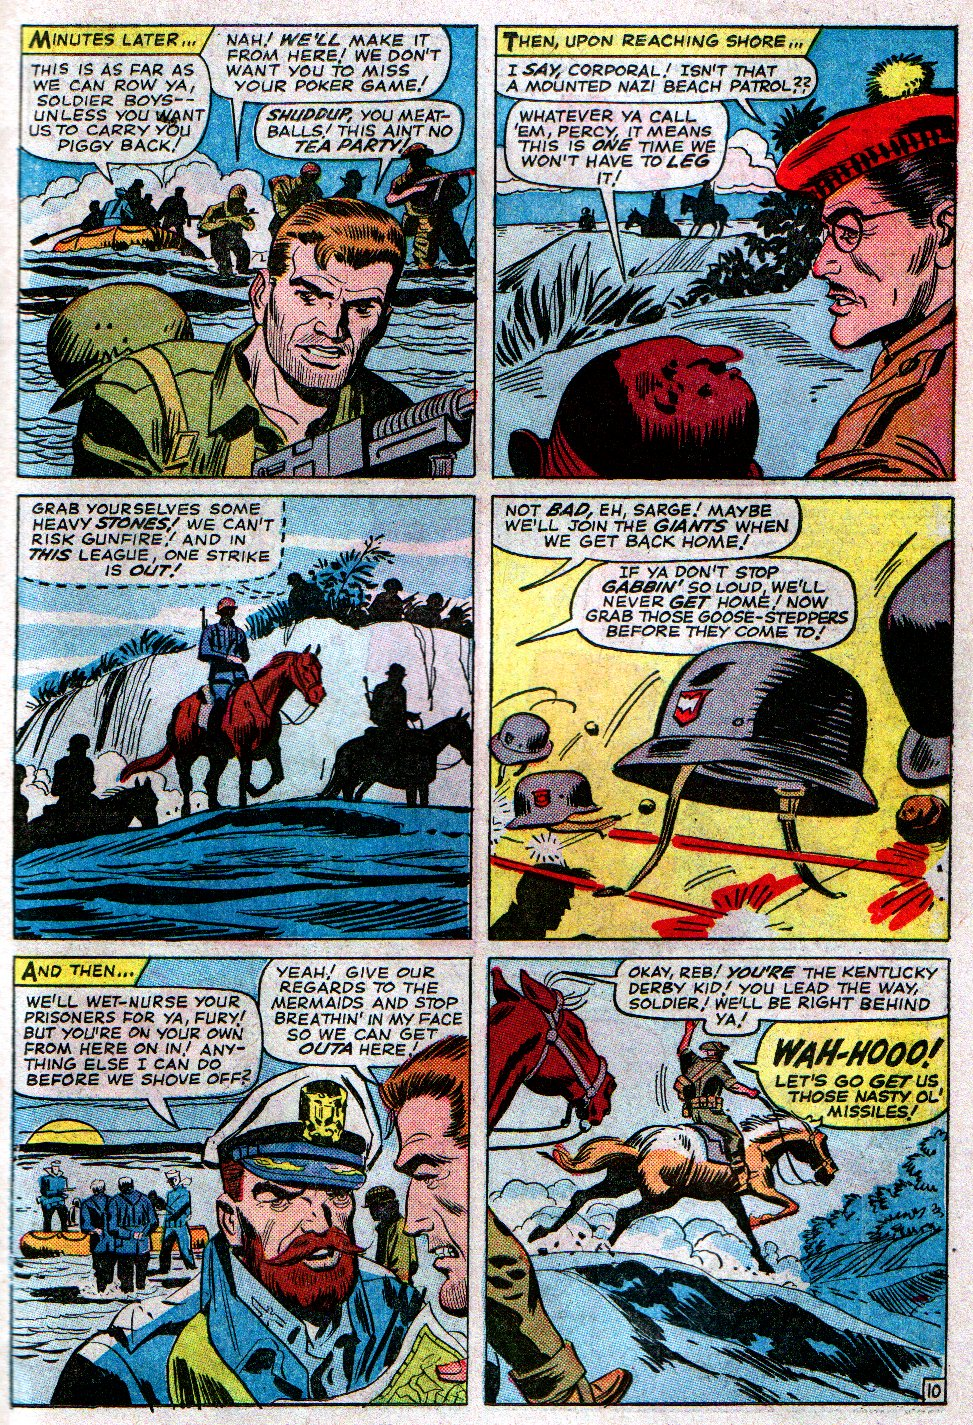 Read online Sgt. Fury comic -  Issue #14 - 15